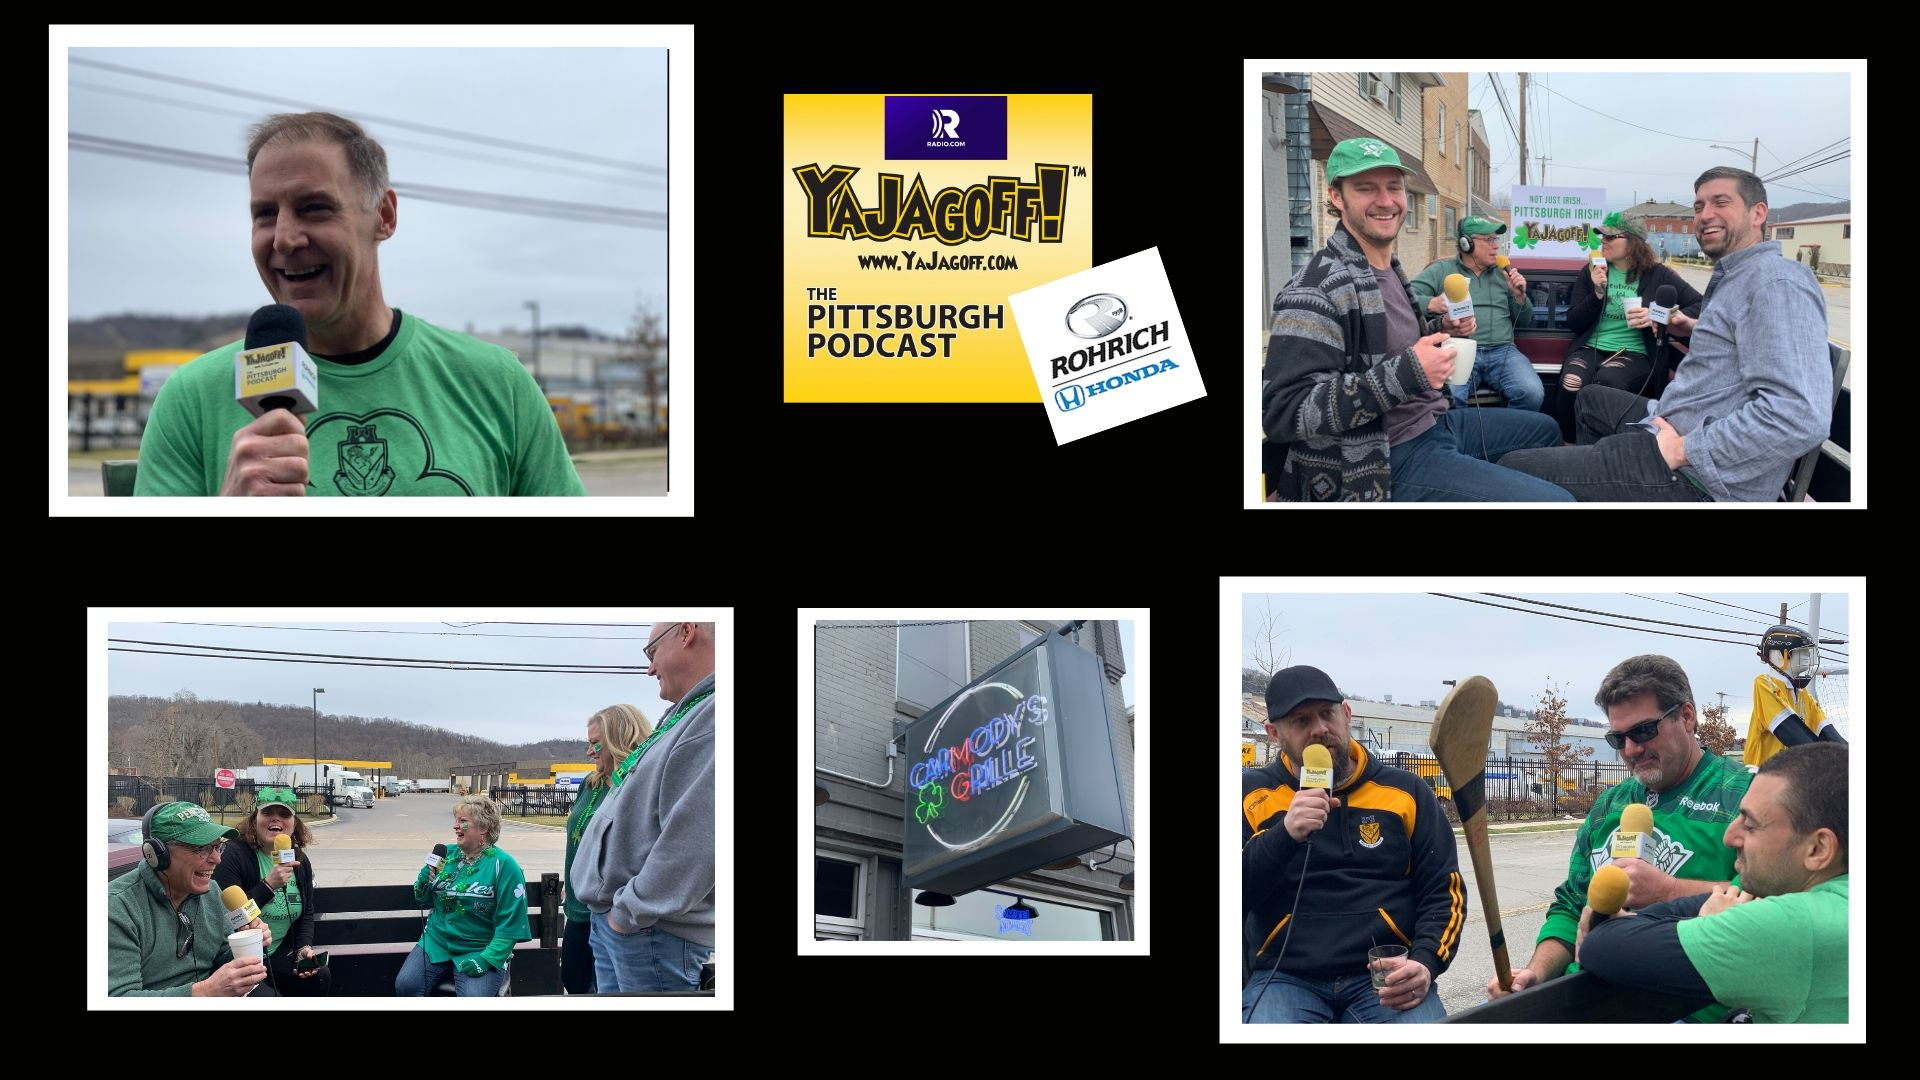 YaJagoff Podcast from Carmody's Grille